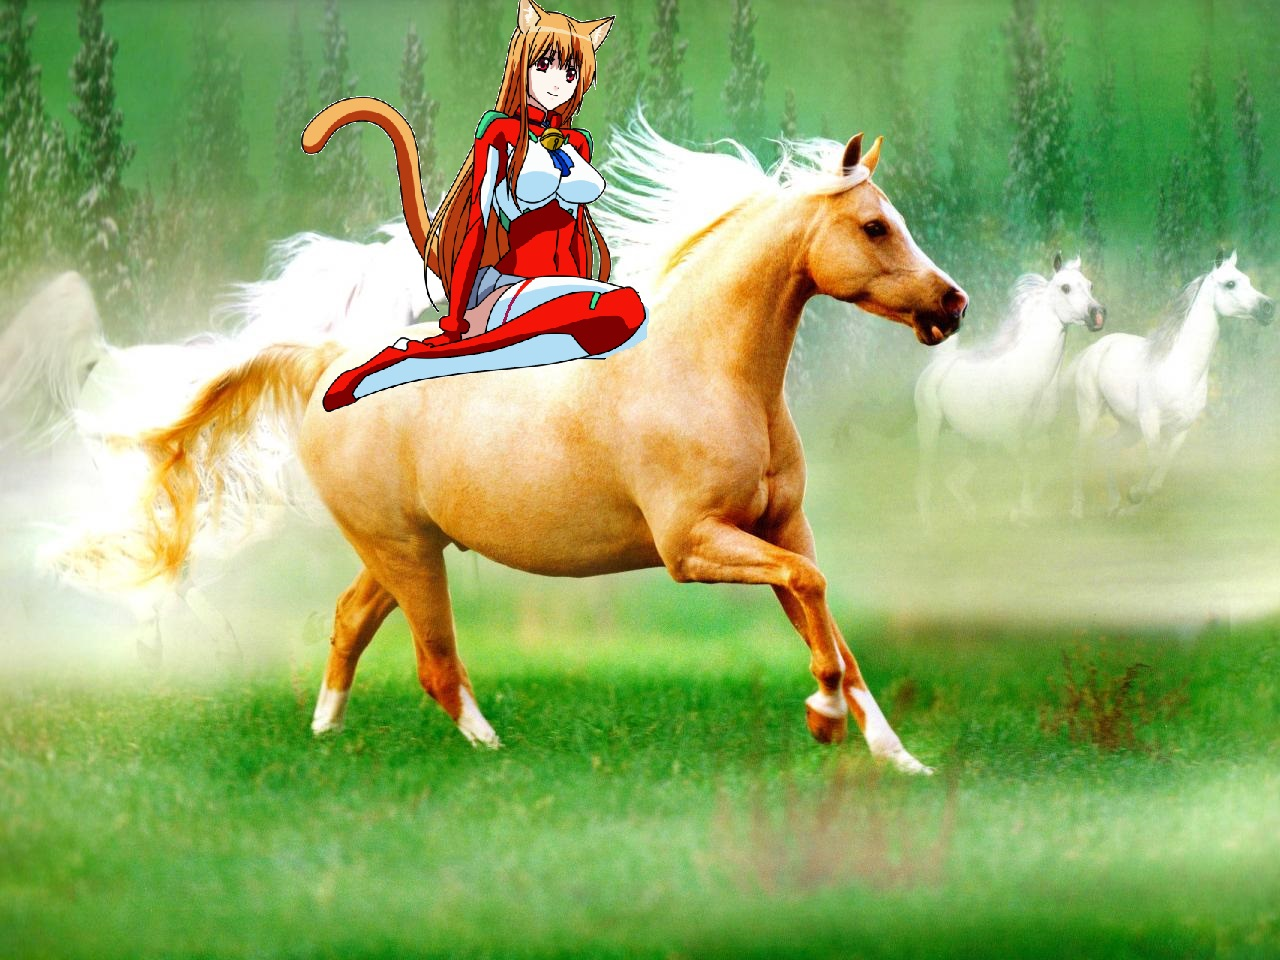 Catgirls images Cute Catgirl Eris with her Beautiful Horses HD wallpaper and background photos